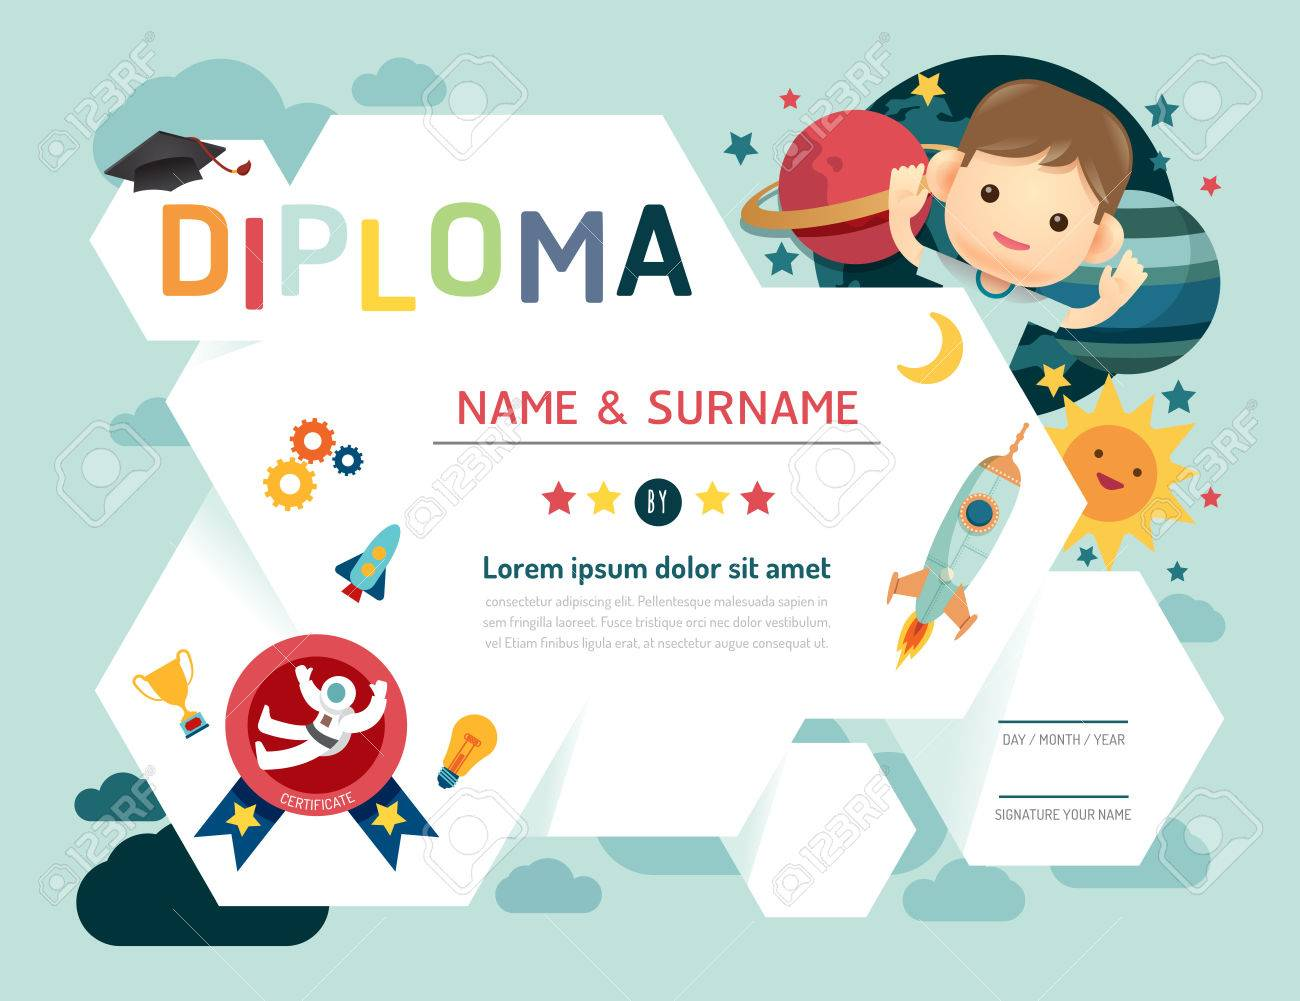 Certificate kids diploma kindergarten template layout space certificate kids diploma kindergarten template layout space background frame design vector education preschool concept yelopaper